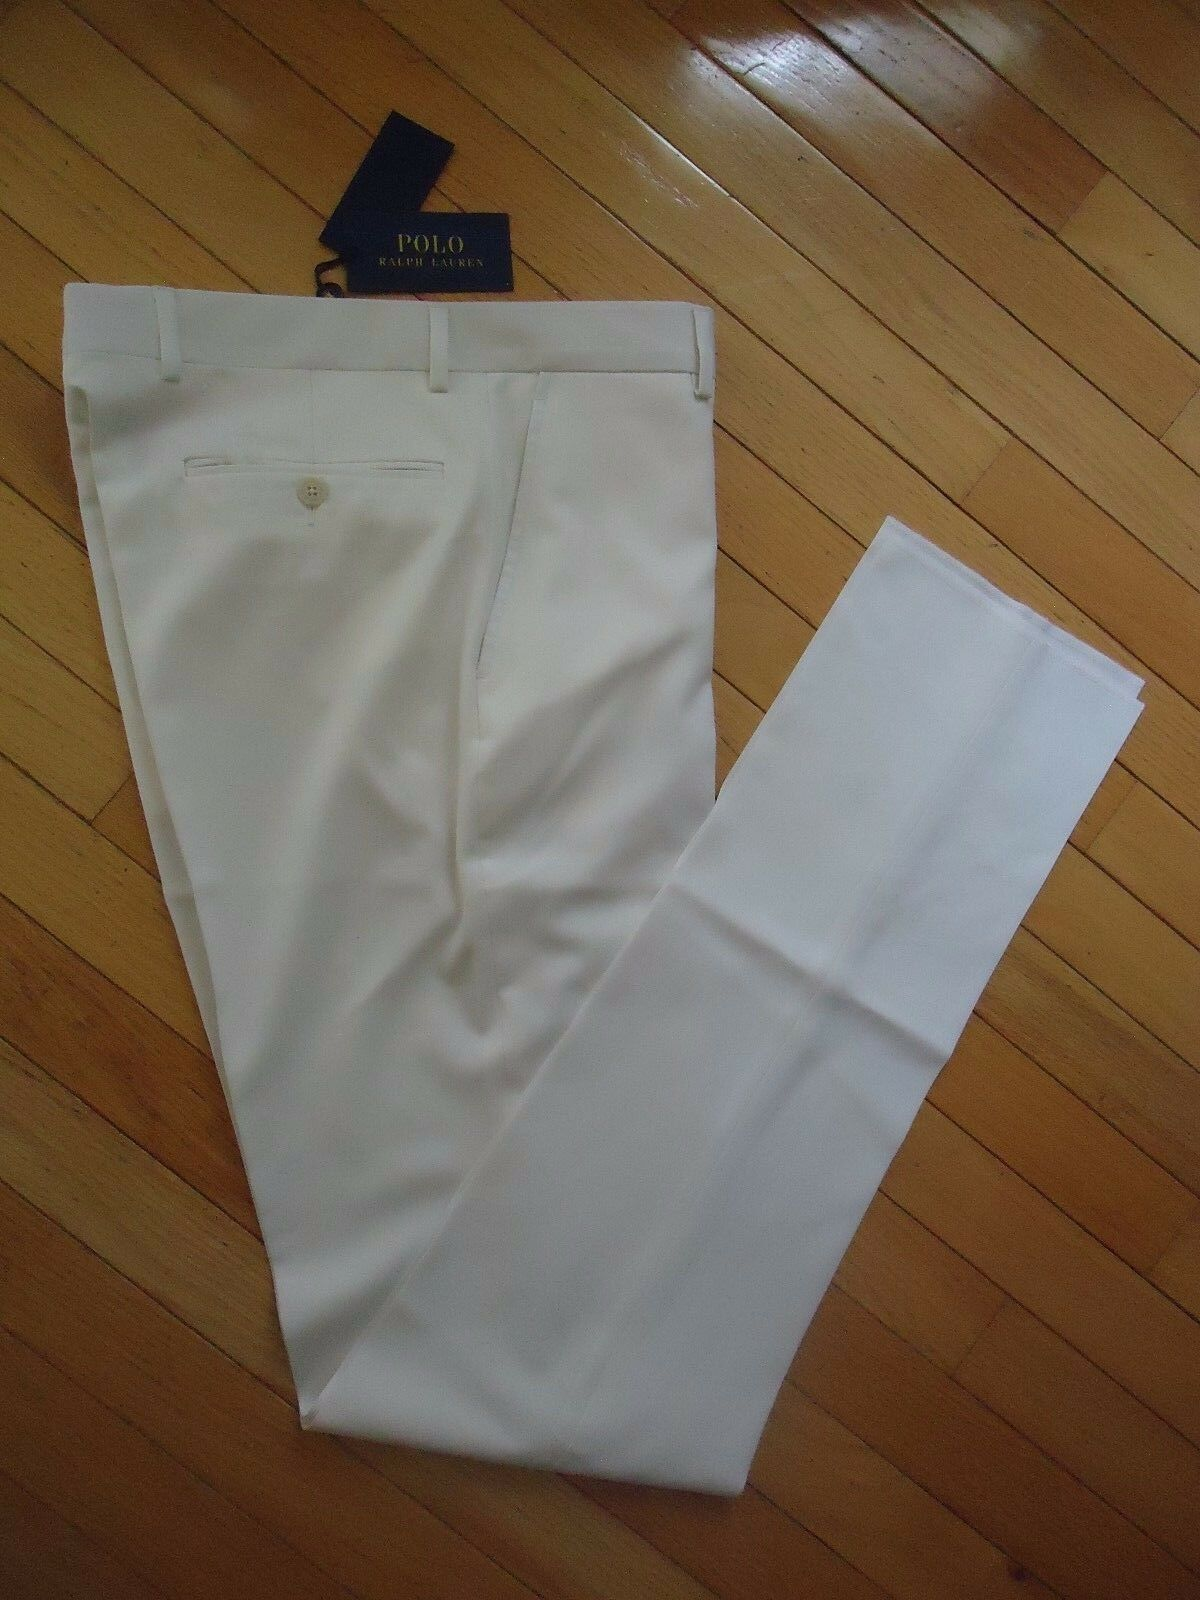 +++NWT  POLO RALPH LAUREN MADE IN ITALY 100% WOOL PANTS SZ 30+++